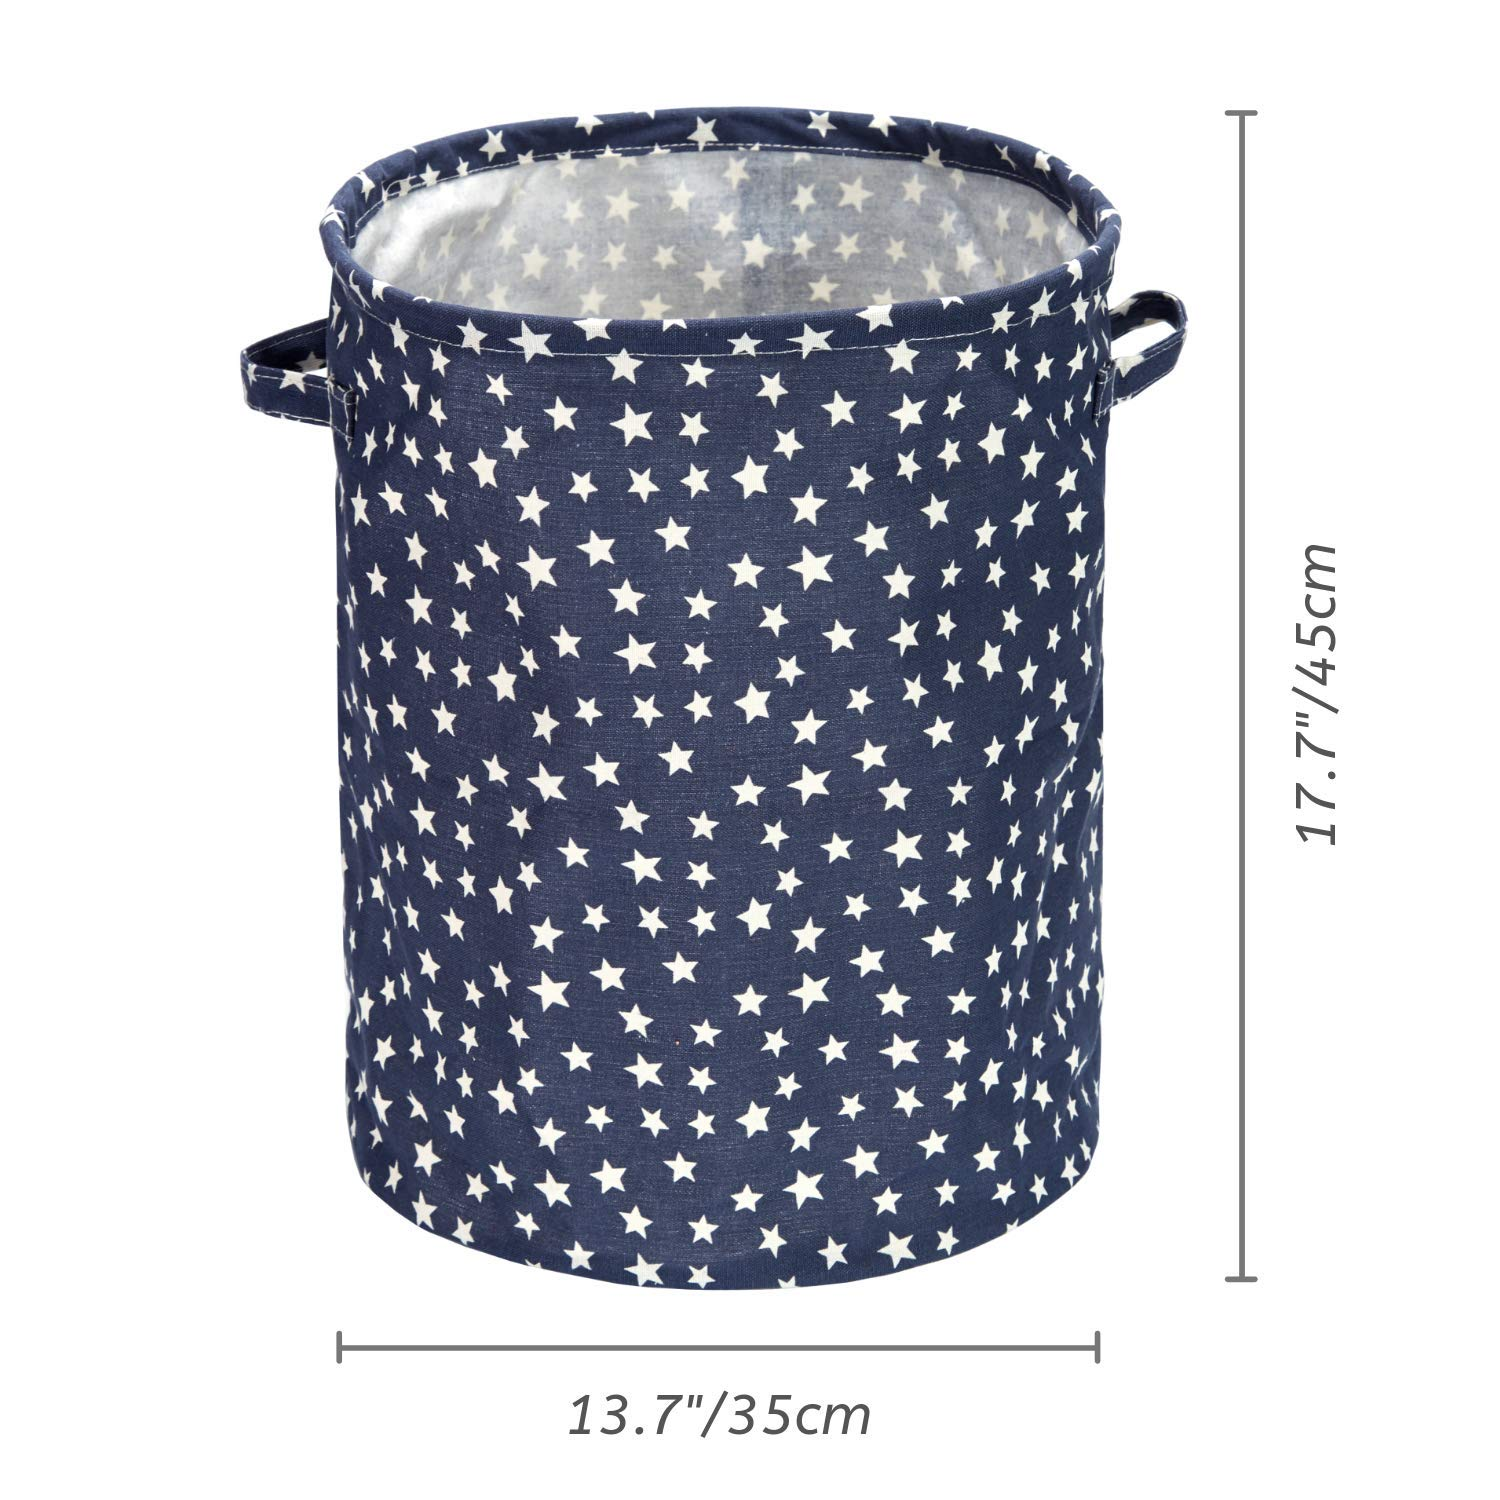 Baby Clothing Mintlyfe 17.7 Large Size Laundry Hamper Storage Basket with Handles Waterproof of Coating Canvas Fabric Kids Storage Bins for Baby Toys Kid Toys Star Books